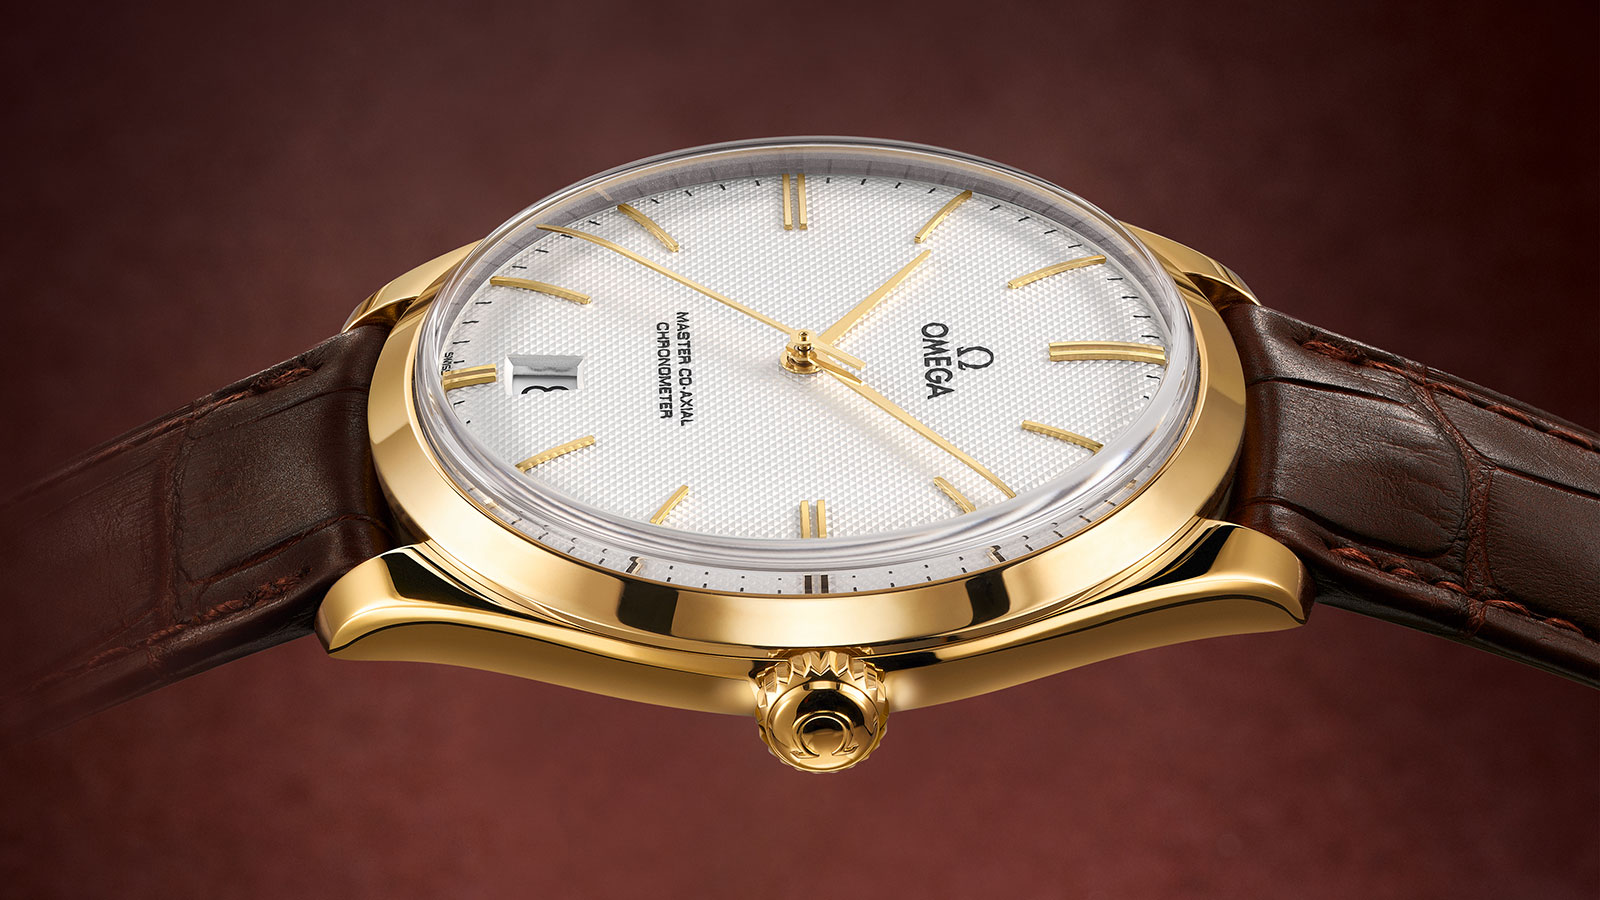 De Ville TRÉSOR Trésor Omega Master Co‑Axial 40 mm Watch - 432.53.40.21.02.001